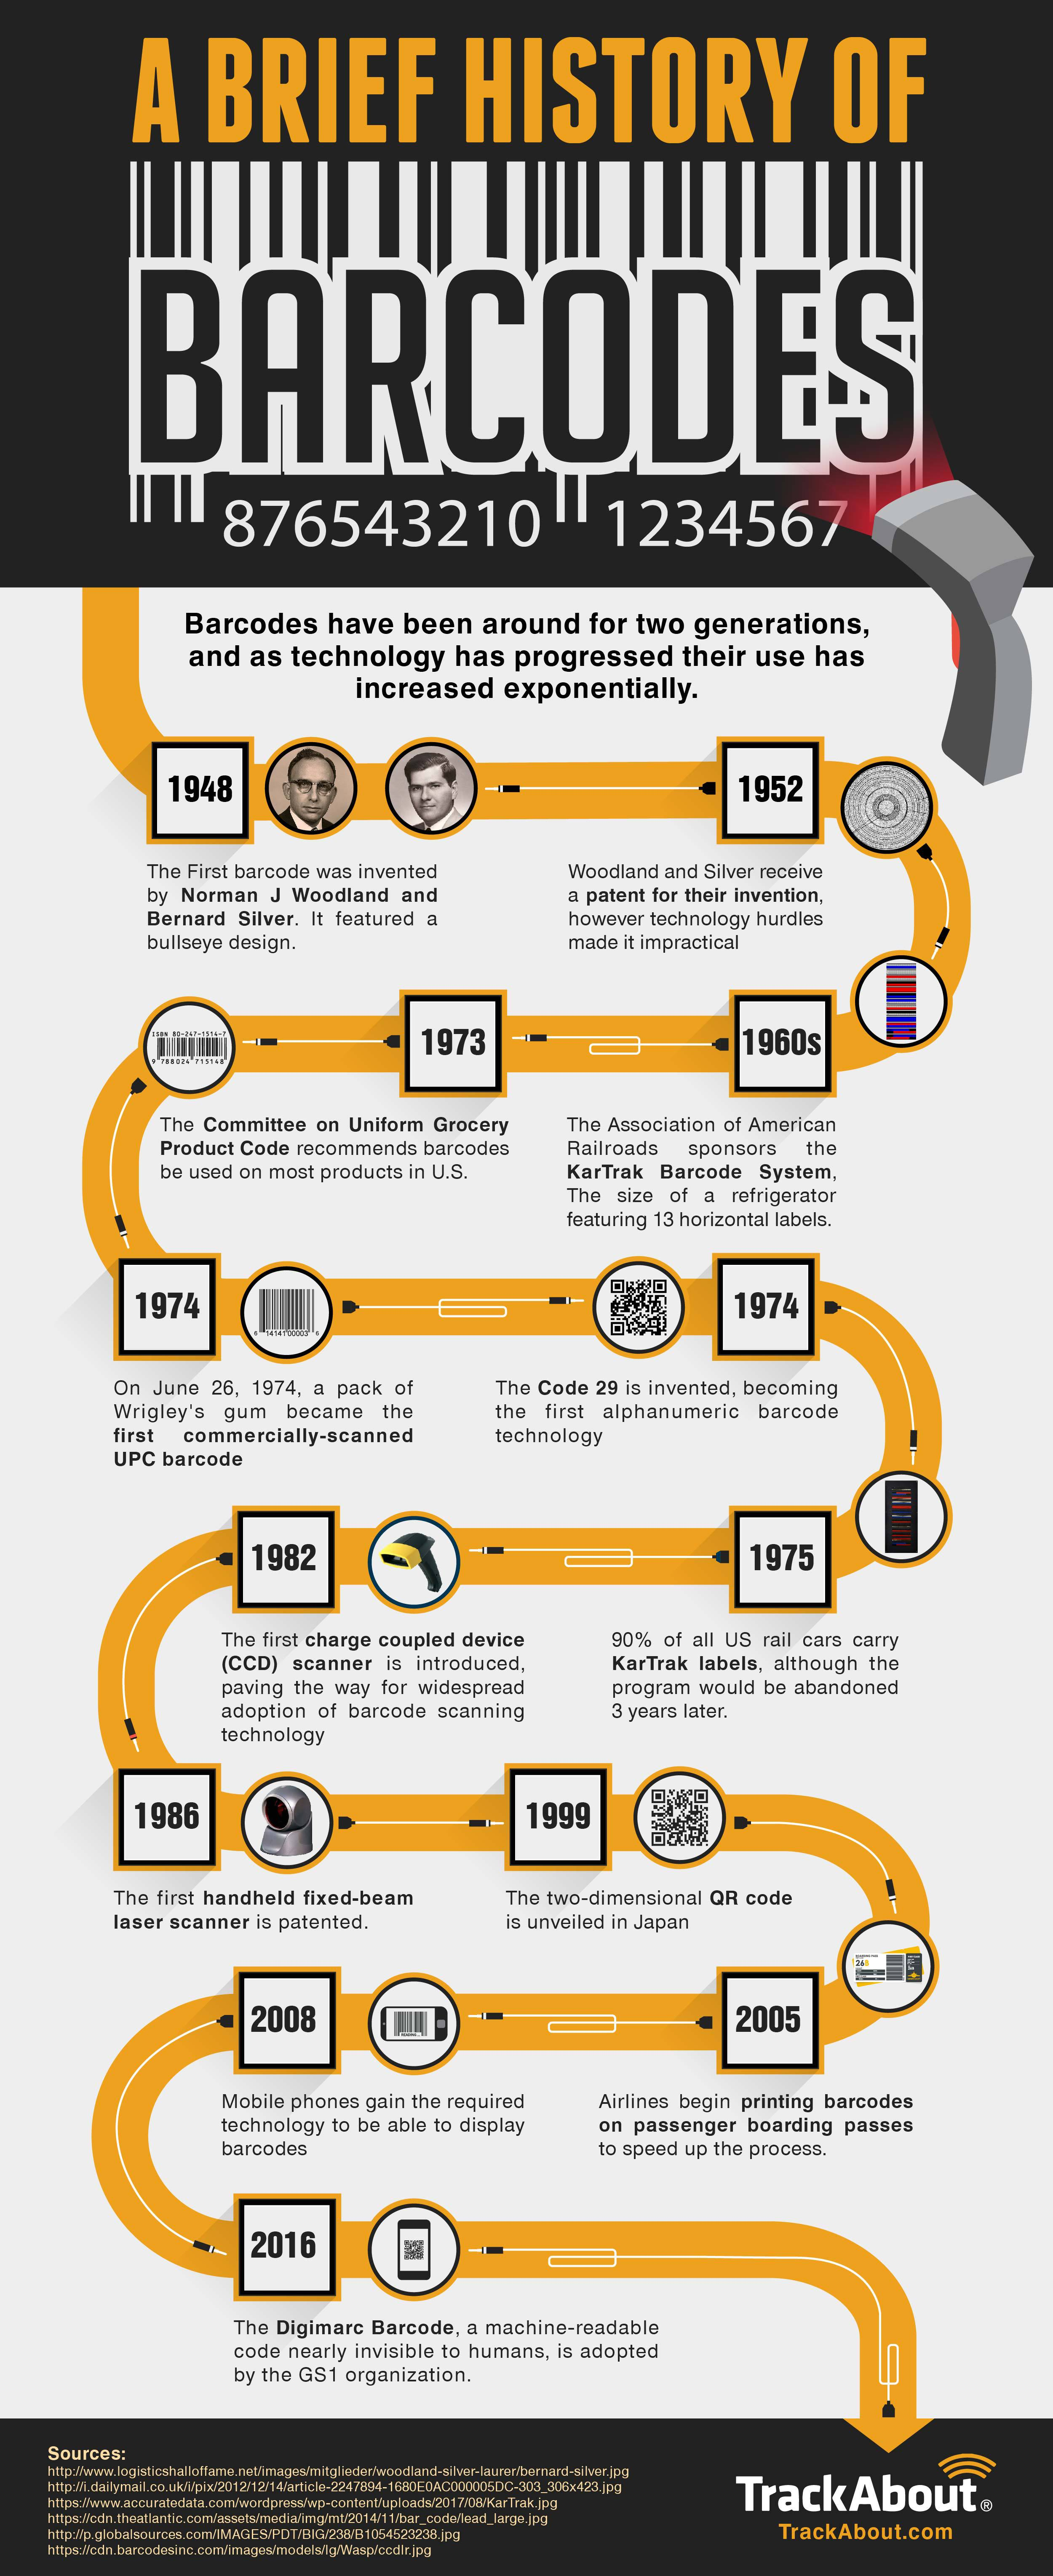 barcode history infographic